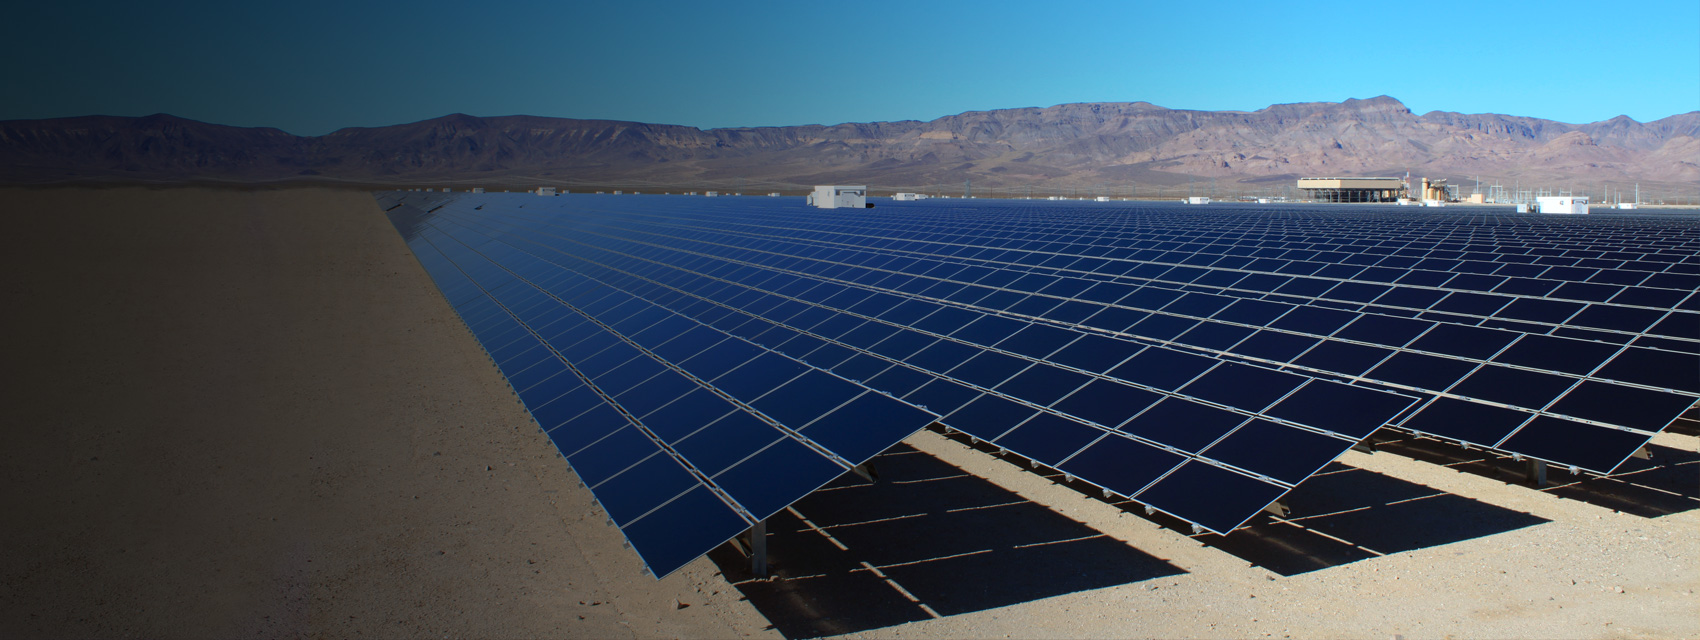 A field of solar panels are positioned to receive sunlight.